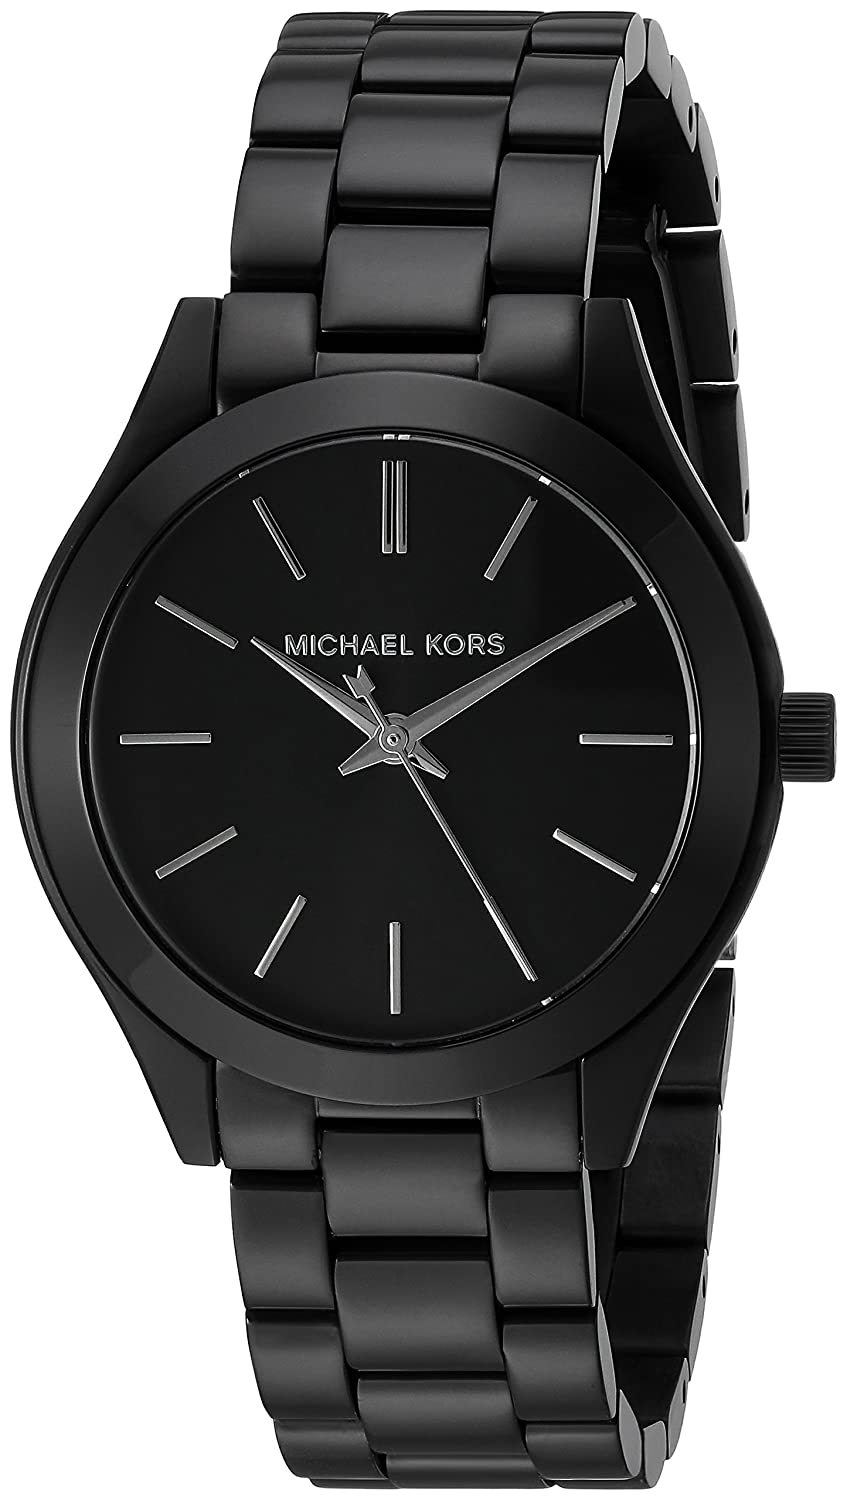 2d63d371ef4 Details about Michael Kors Women s MK3587 Mini Slim Runway Black Stainless  Steel Watch